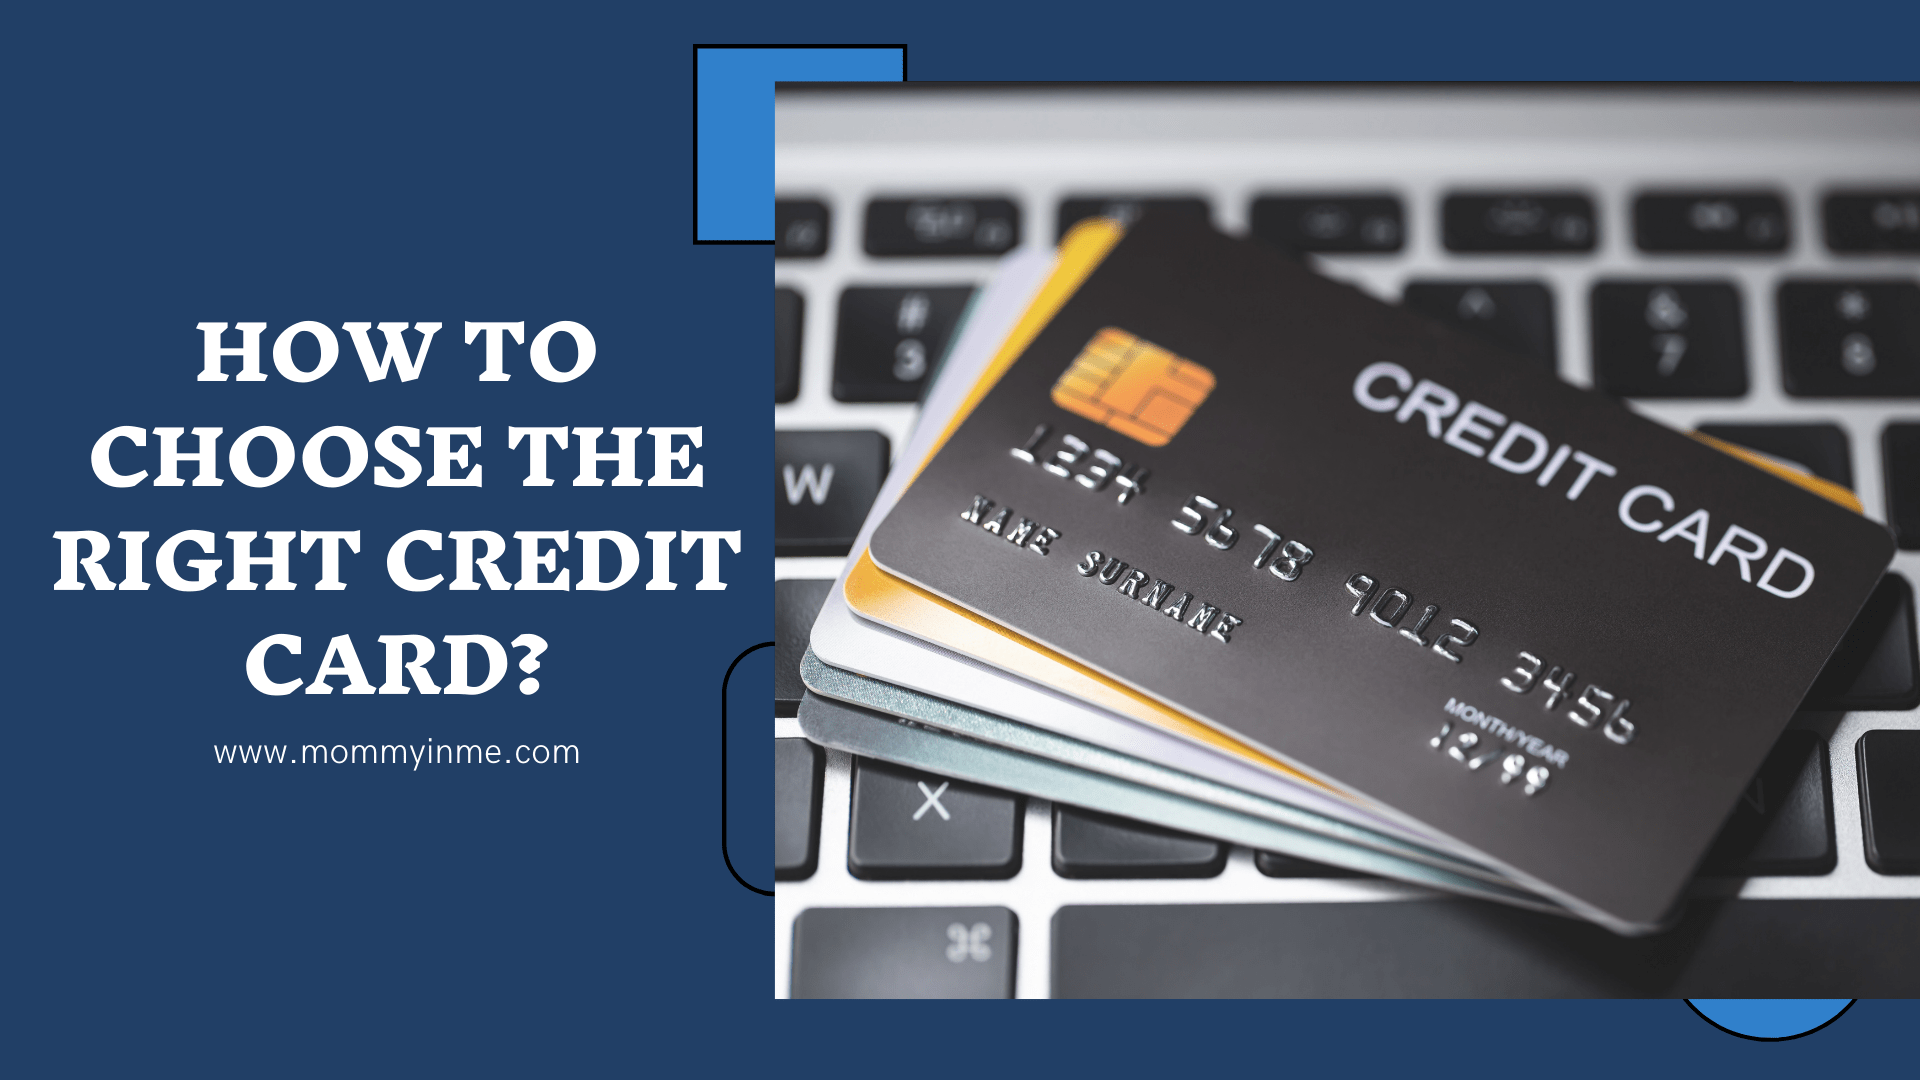 How to choose the right Credit Card?